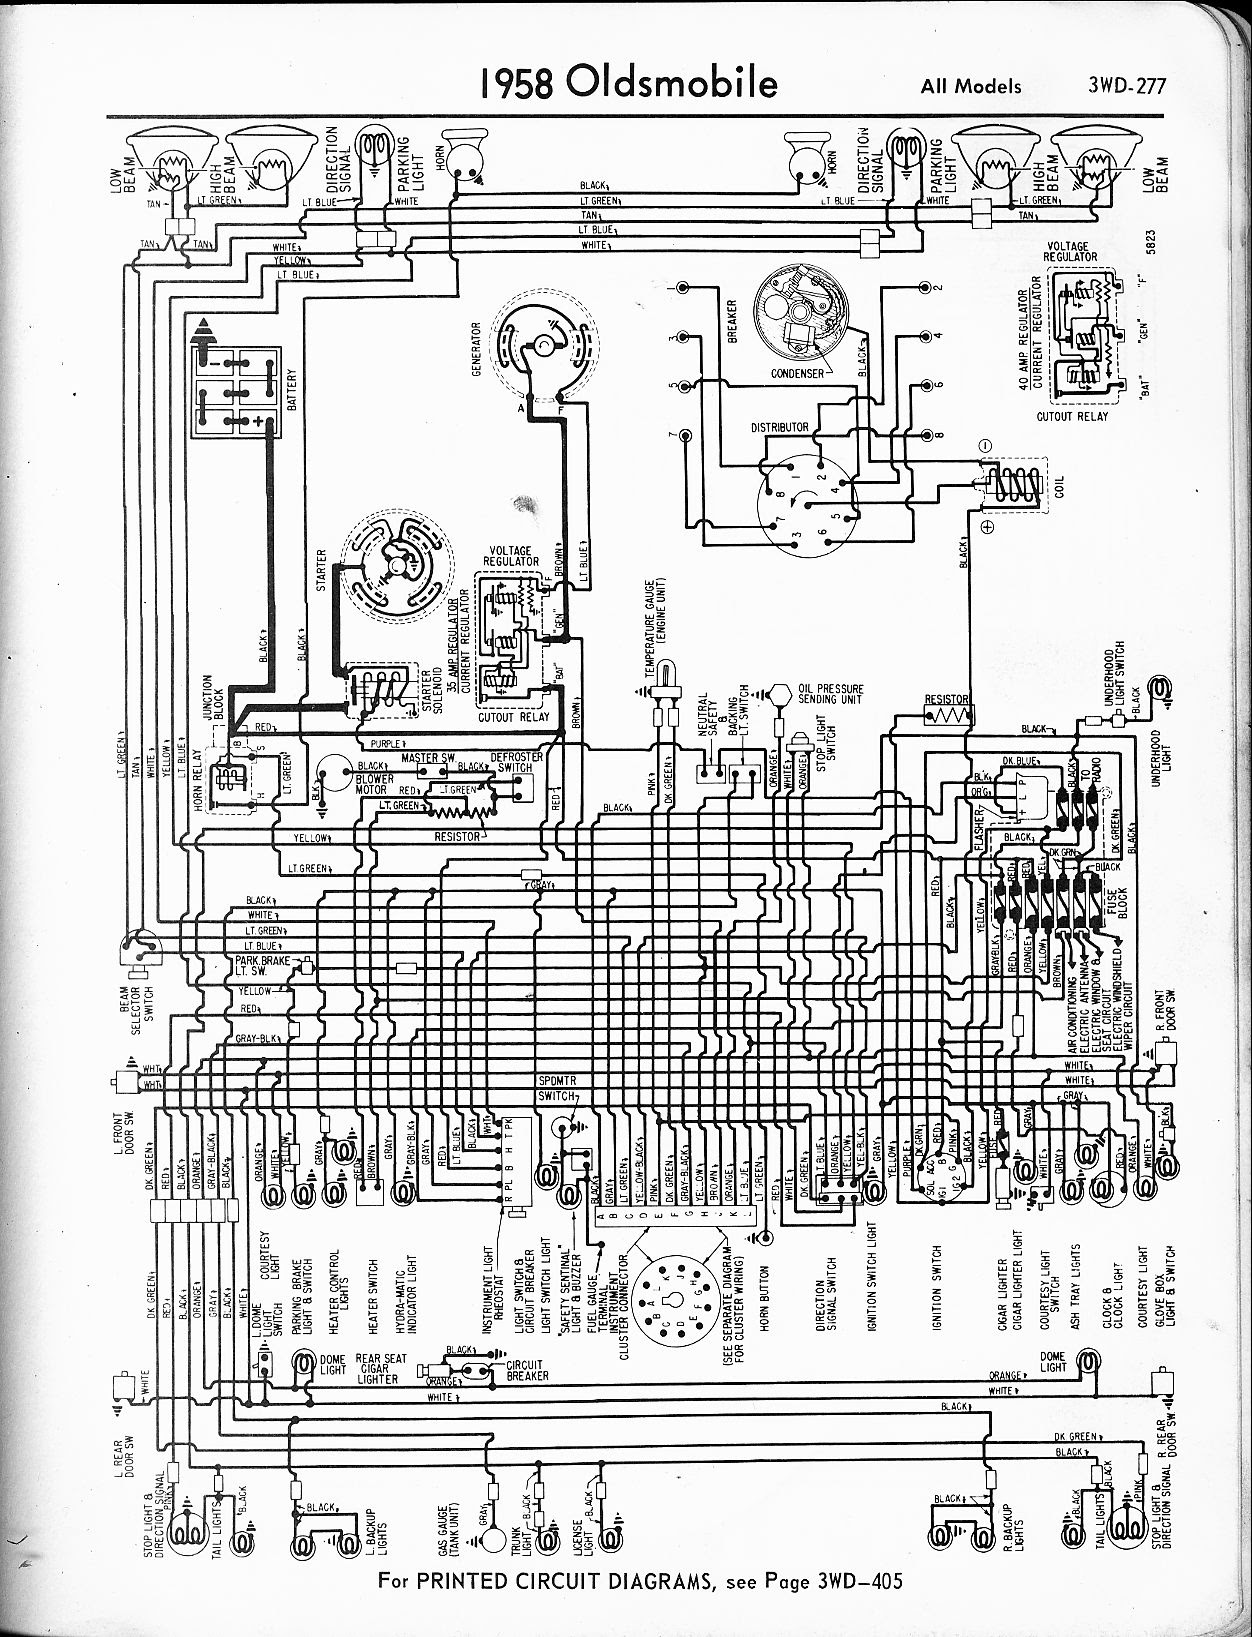 1971 Oldsmobile 88 Wiring Diagram Hopkins 6 Pole Wiring Diagram Sportster Wiring Losdol2 Jeanjaures37 Fr